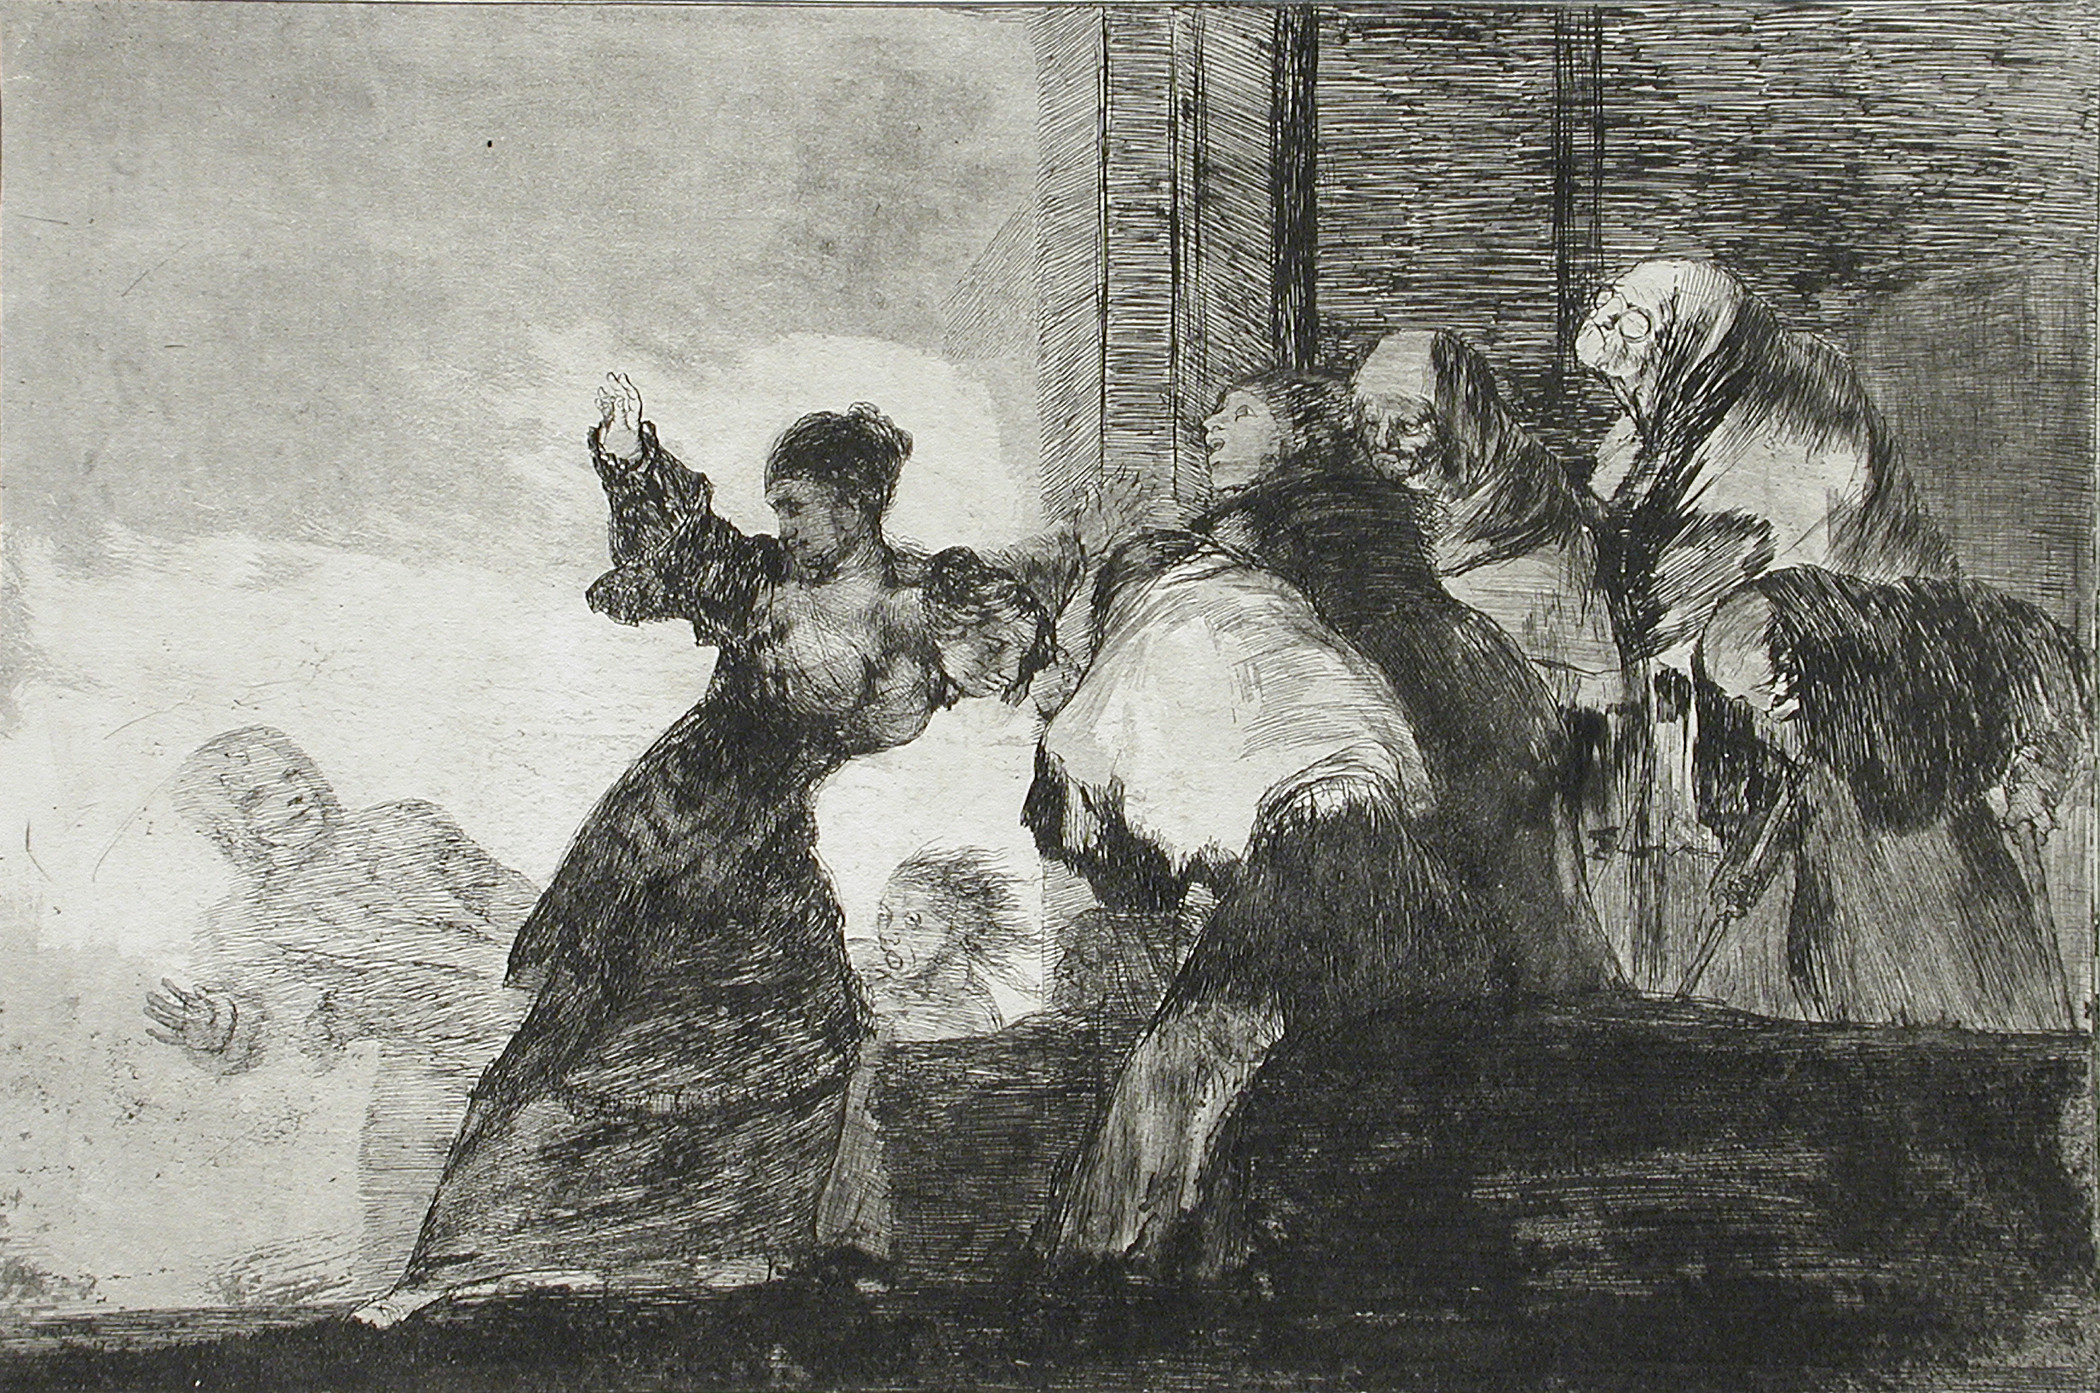 Francisco Goya y Lucientes, Poor Folly, c. 1815/1816–23, Los Angeles County Museum of Art, Los Angeles County Fund, photo © Museum Associates/LACMA